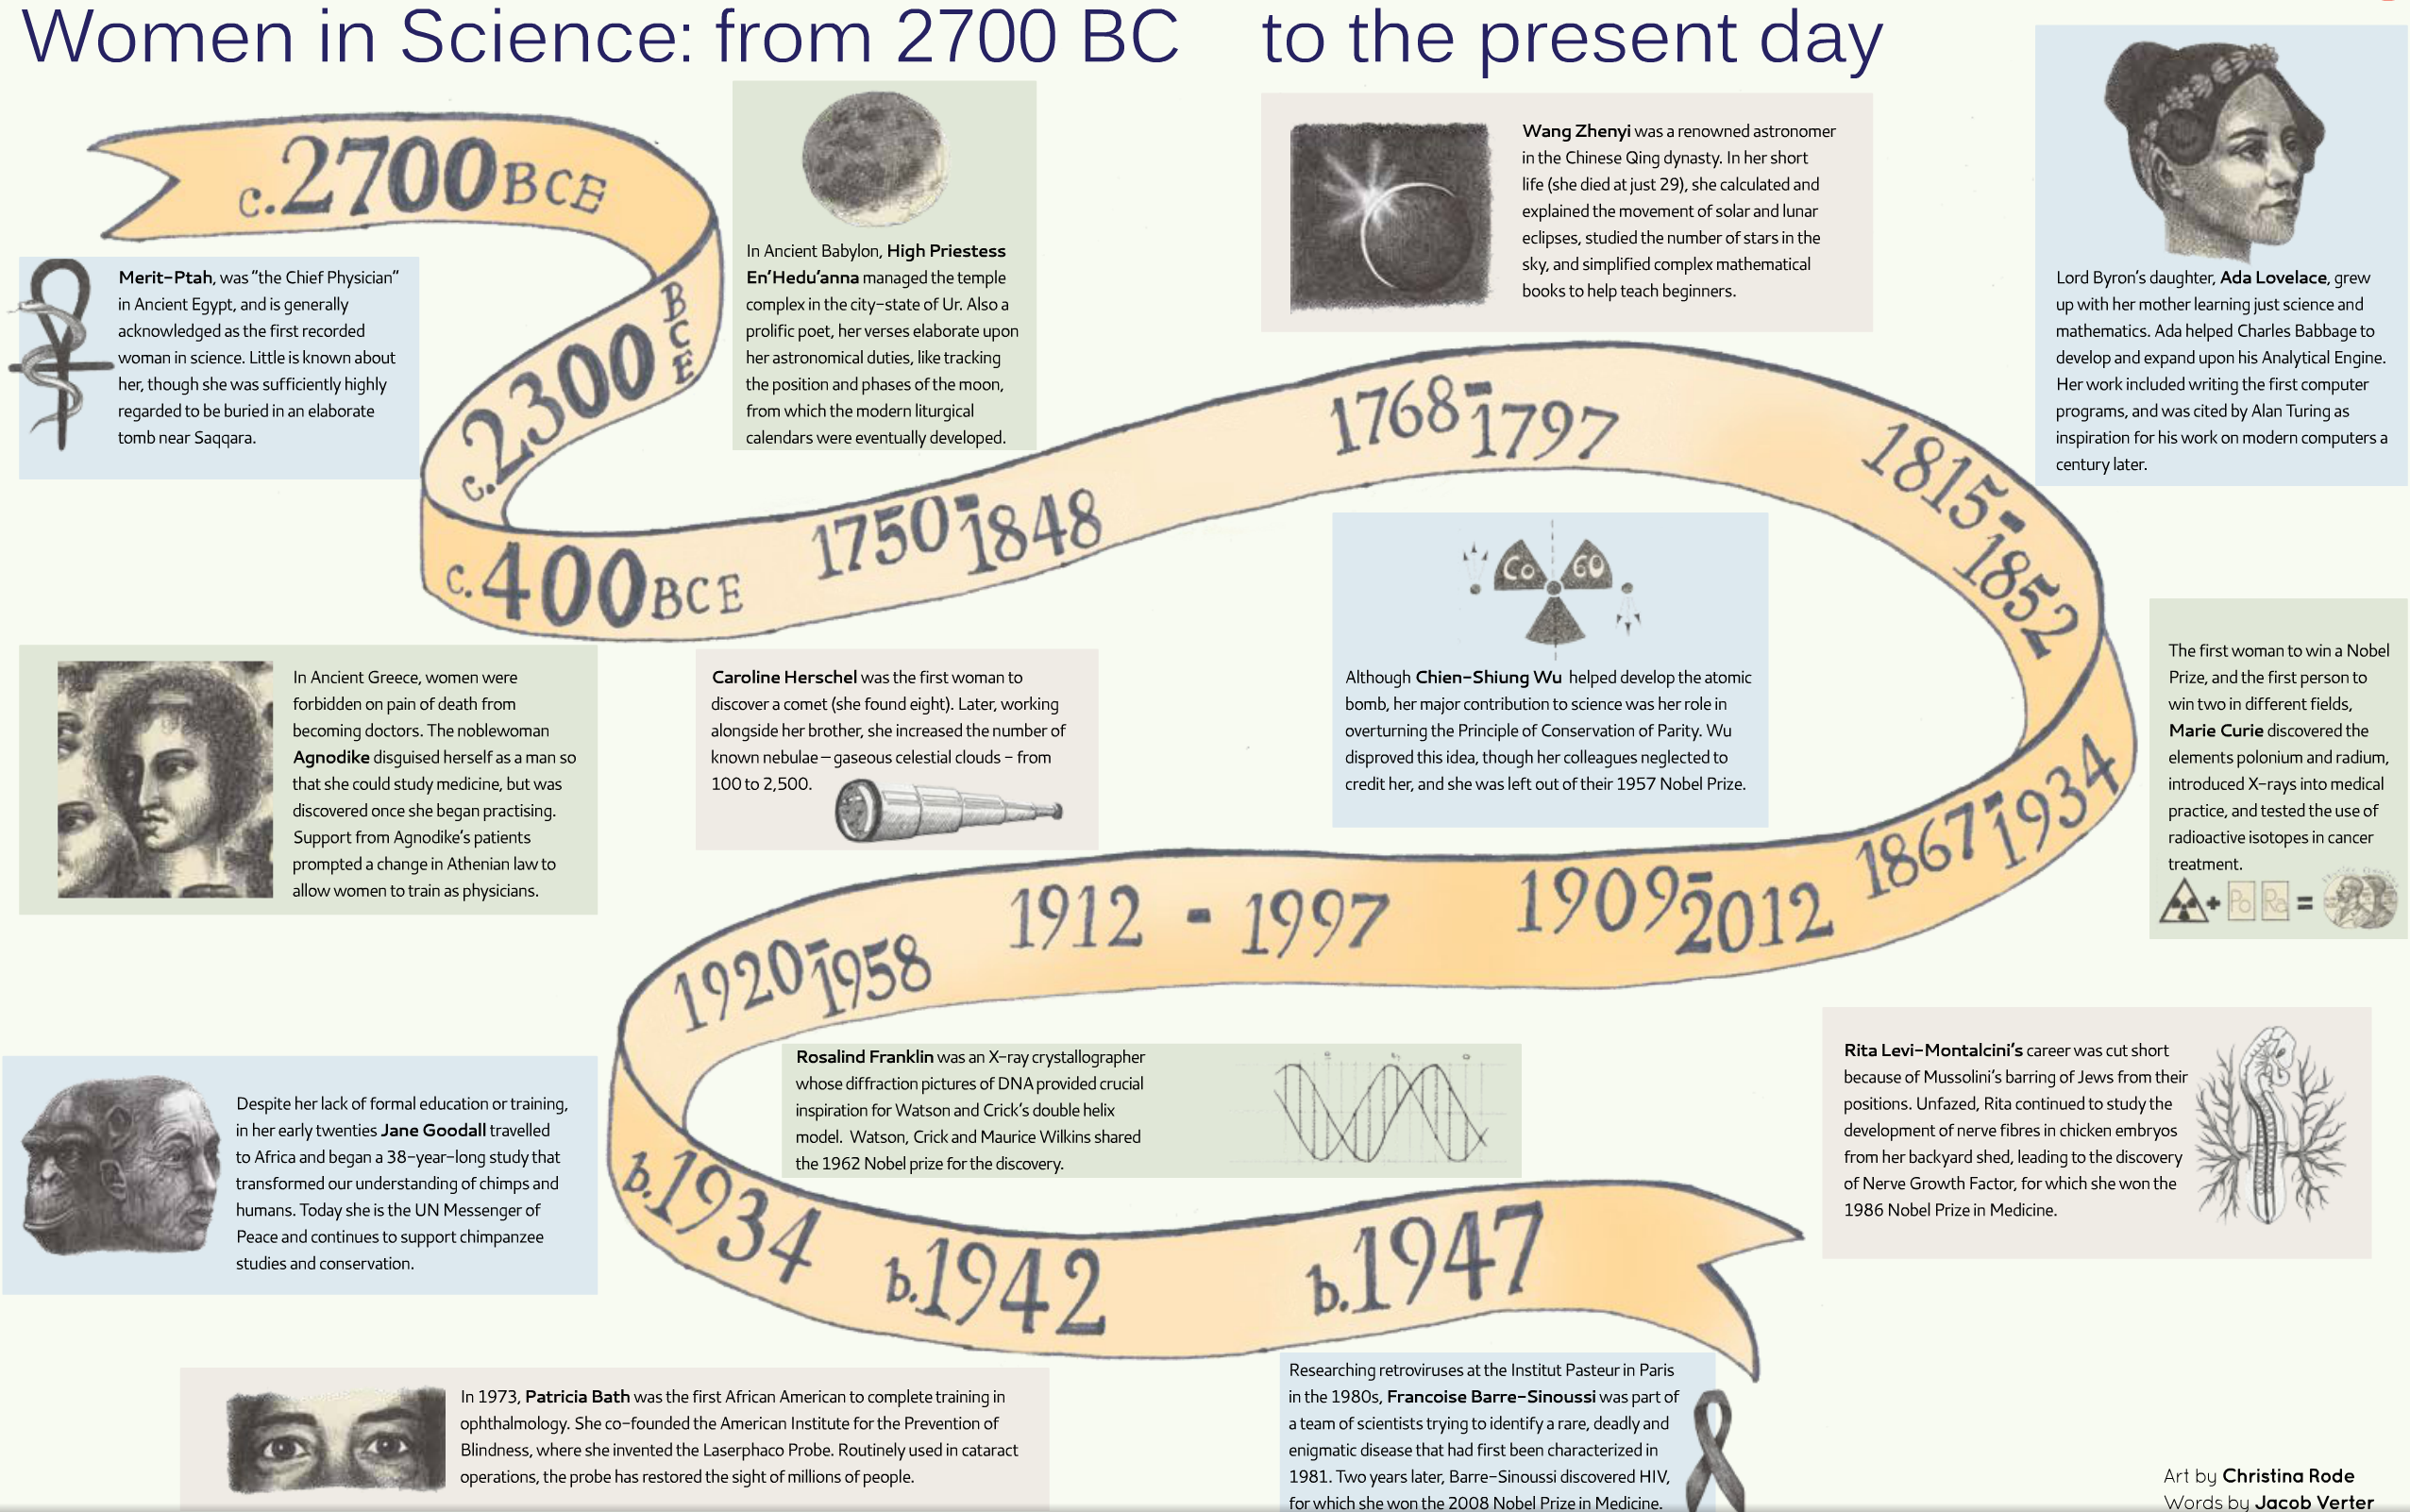 Women in Science timeline